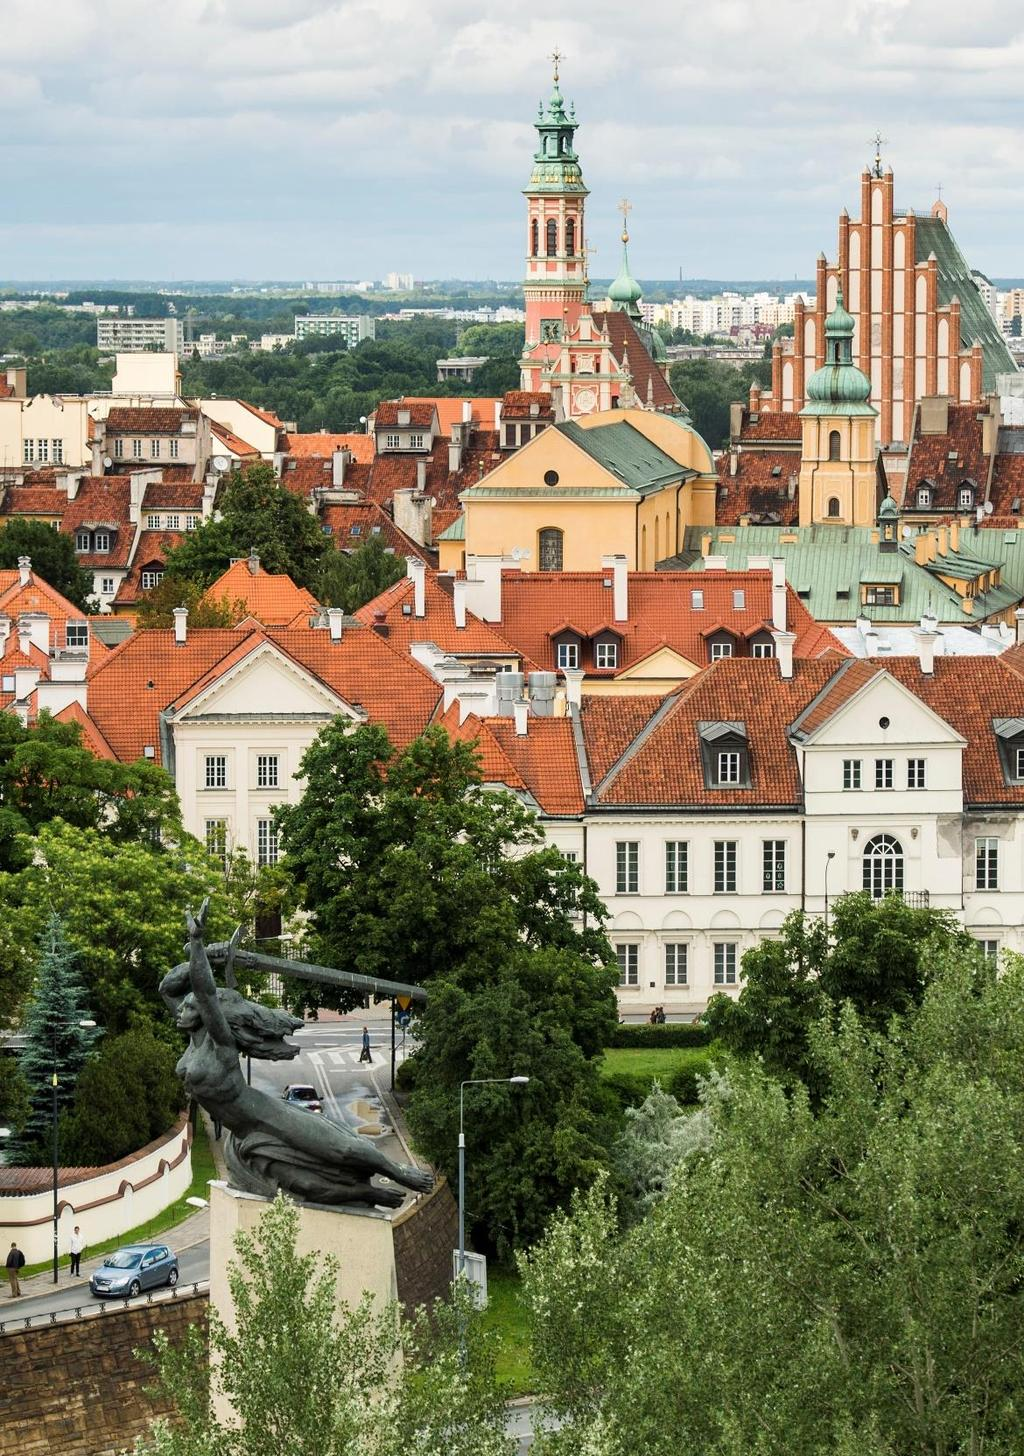 WARSAW AN ACADEMIC CITY 1.